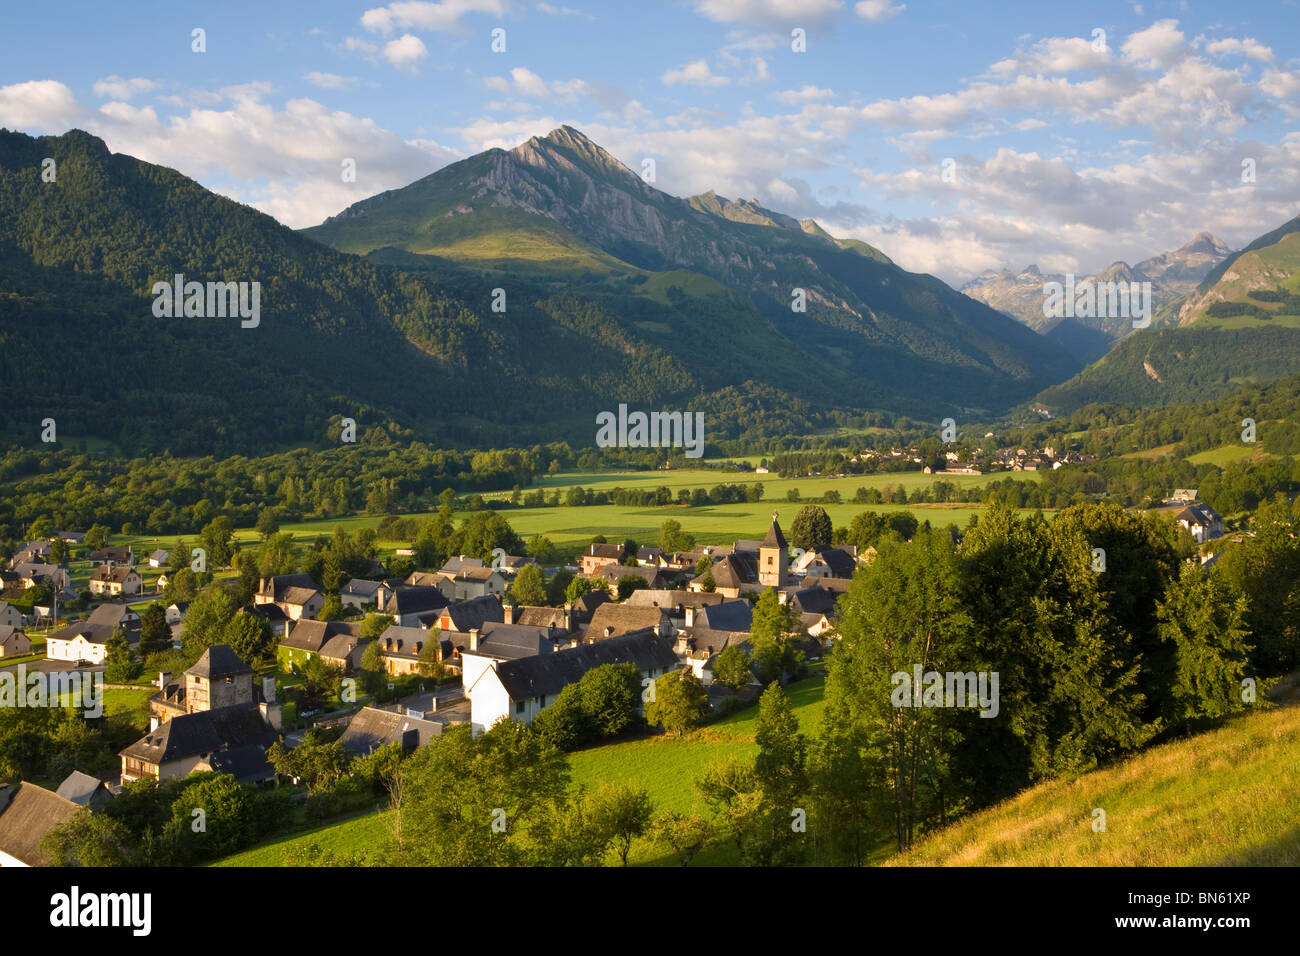 Morning light illuminates the charming Village d'Aucun, Hautes- Pyrenees, France Stock Photo